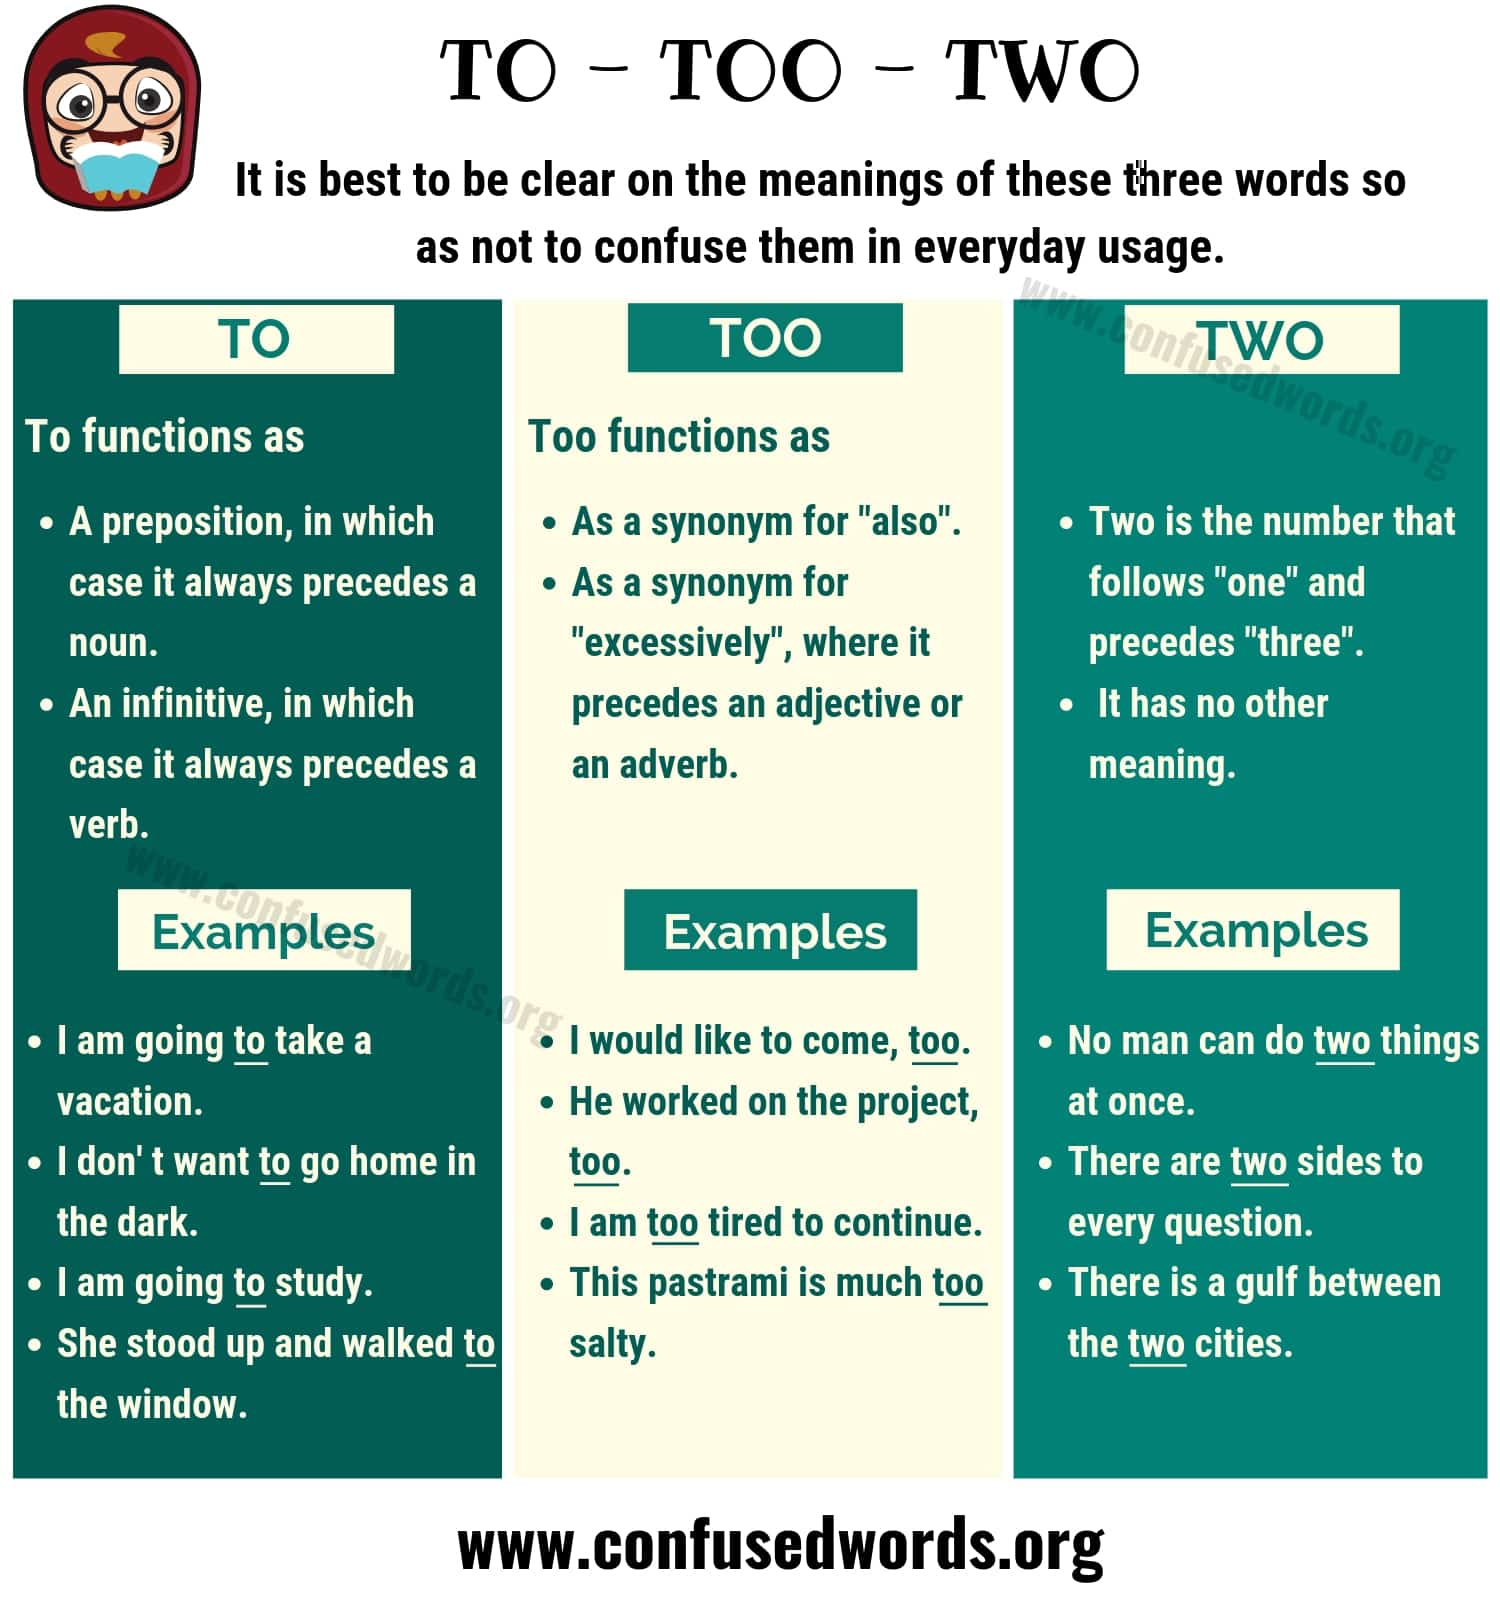 TO TOO TWO - Difference between To vs Too vs Two